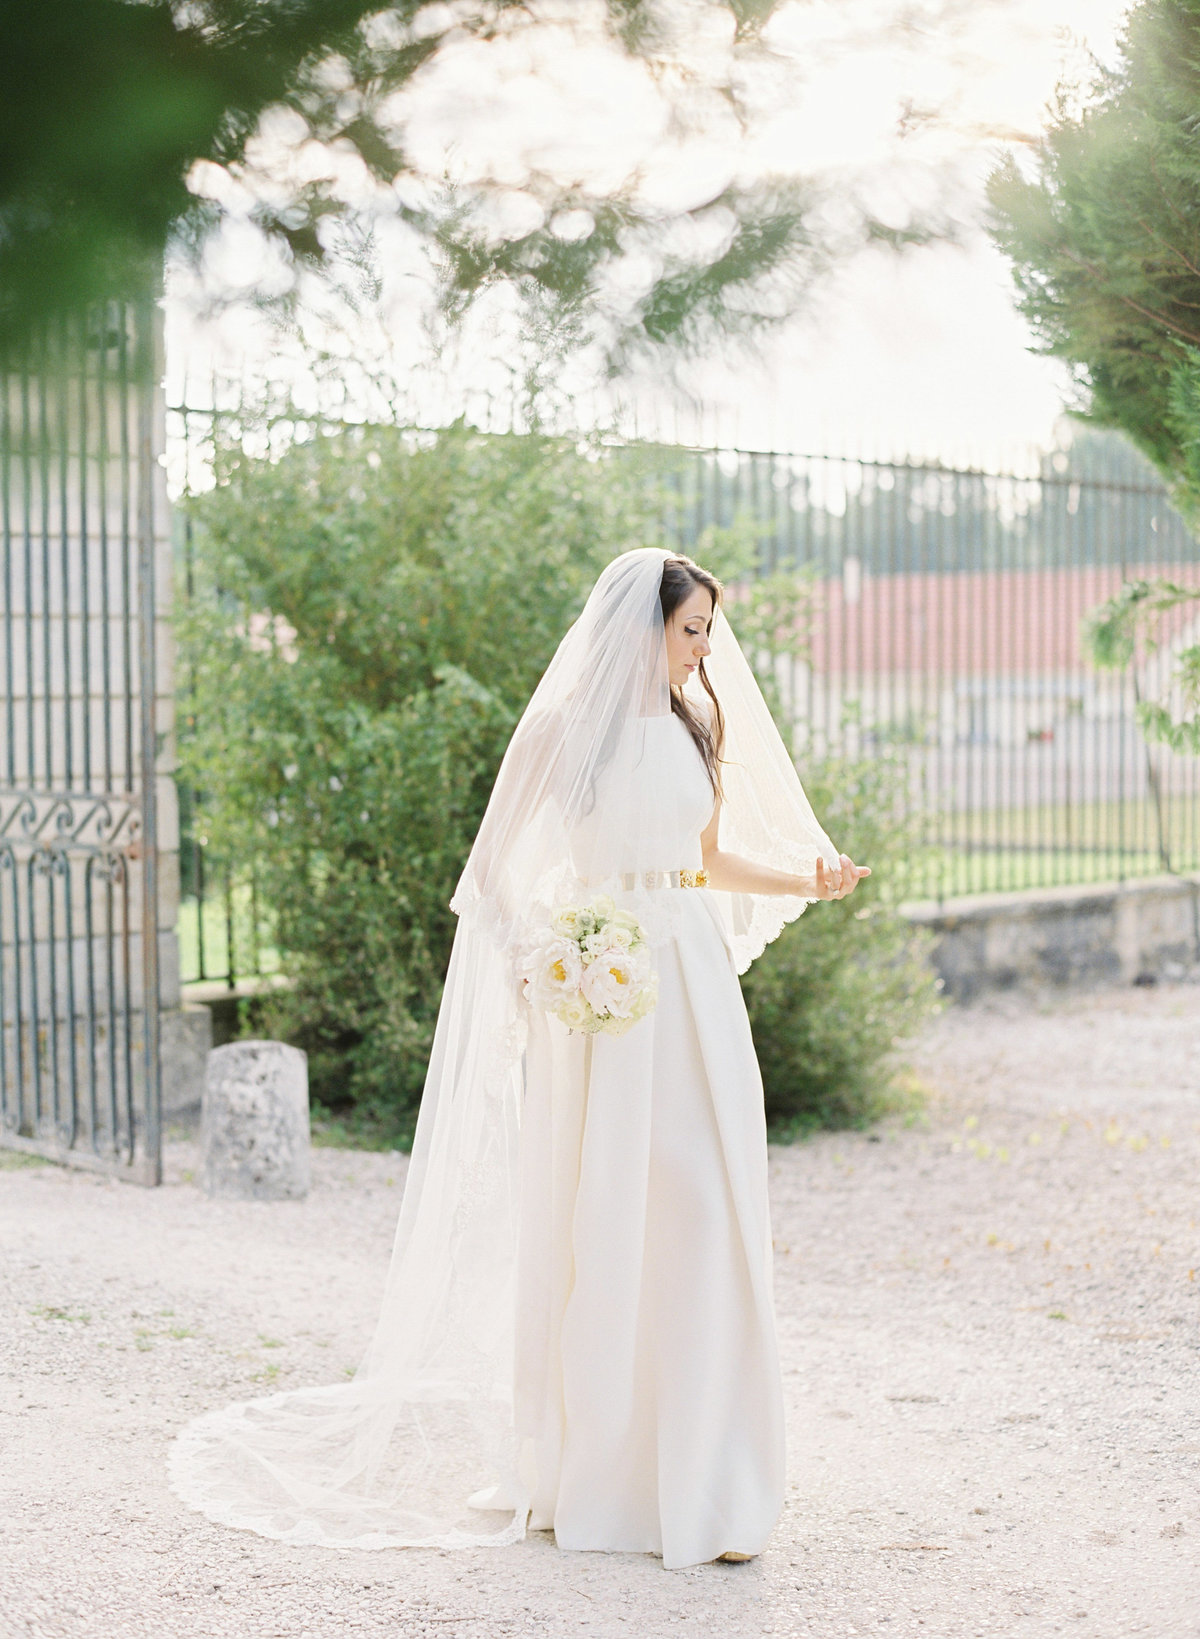 Intimate french champagne chateau wedding amelia soegijono0062